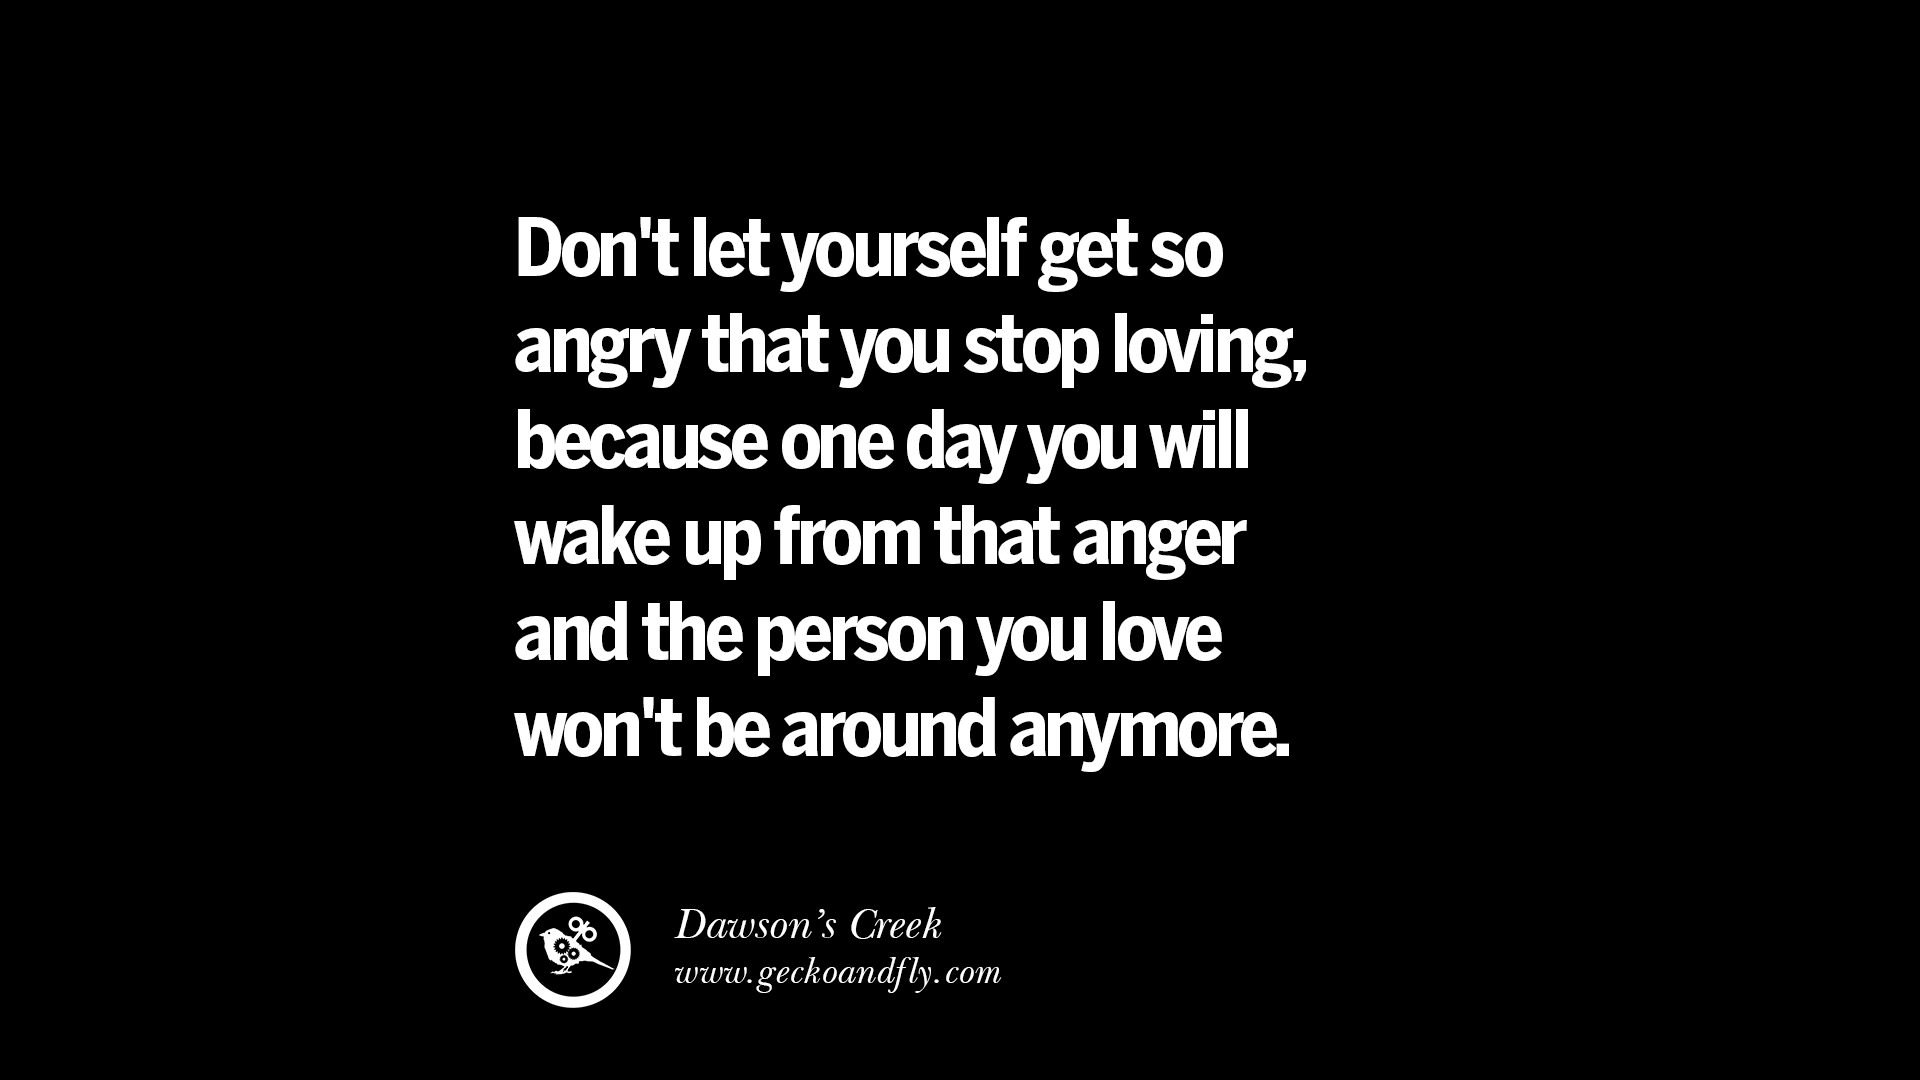 41 Quotes On Anger Management Controlling Anger And Relieving Stress